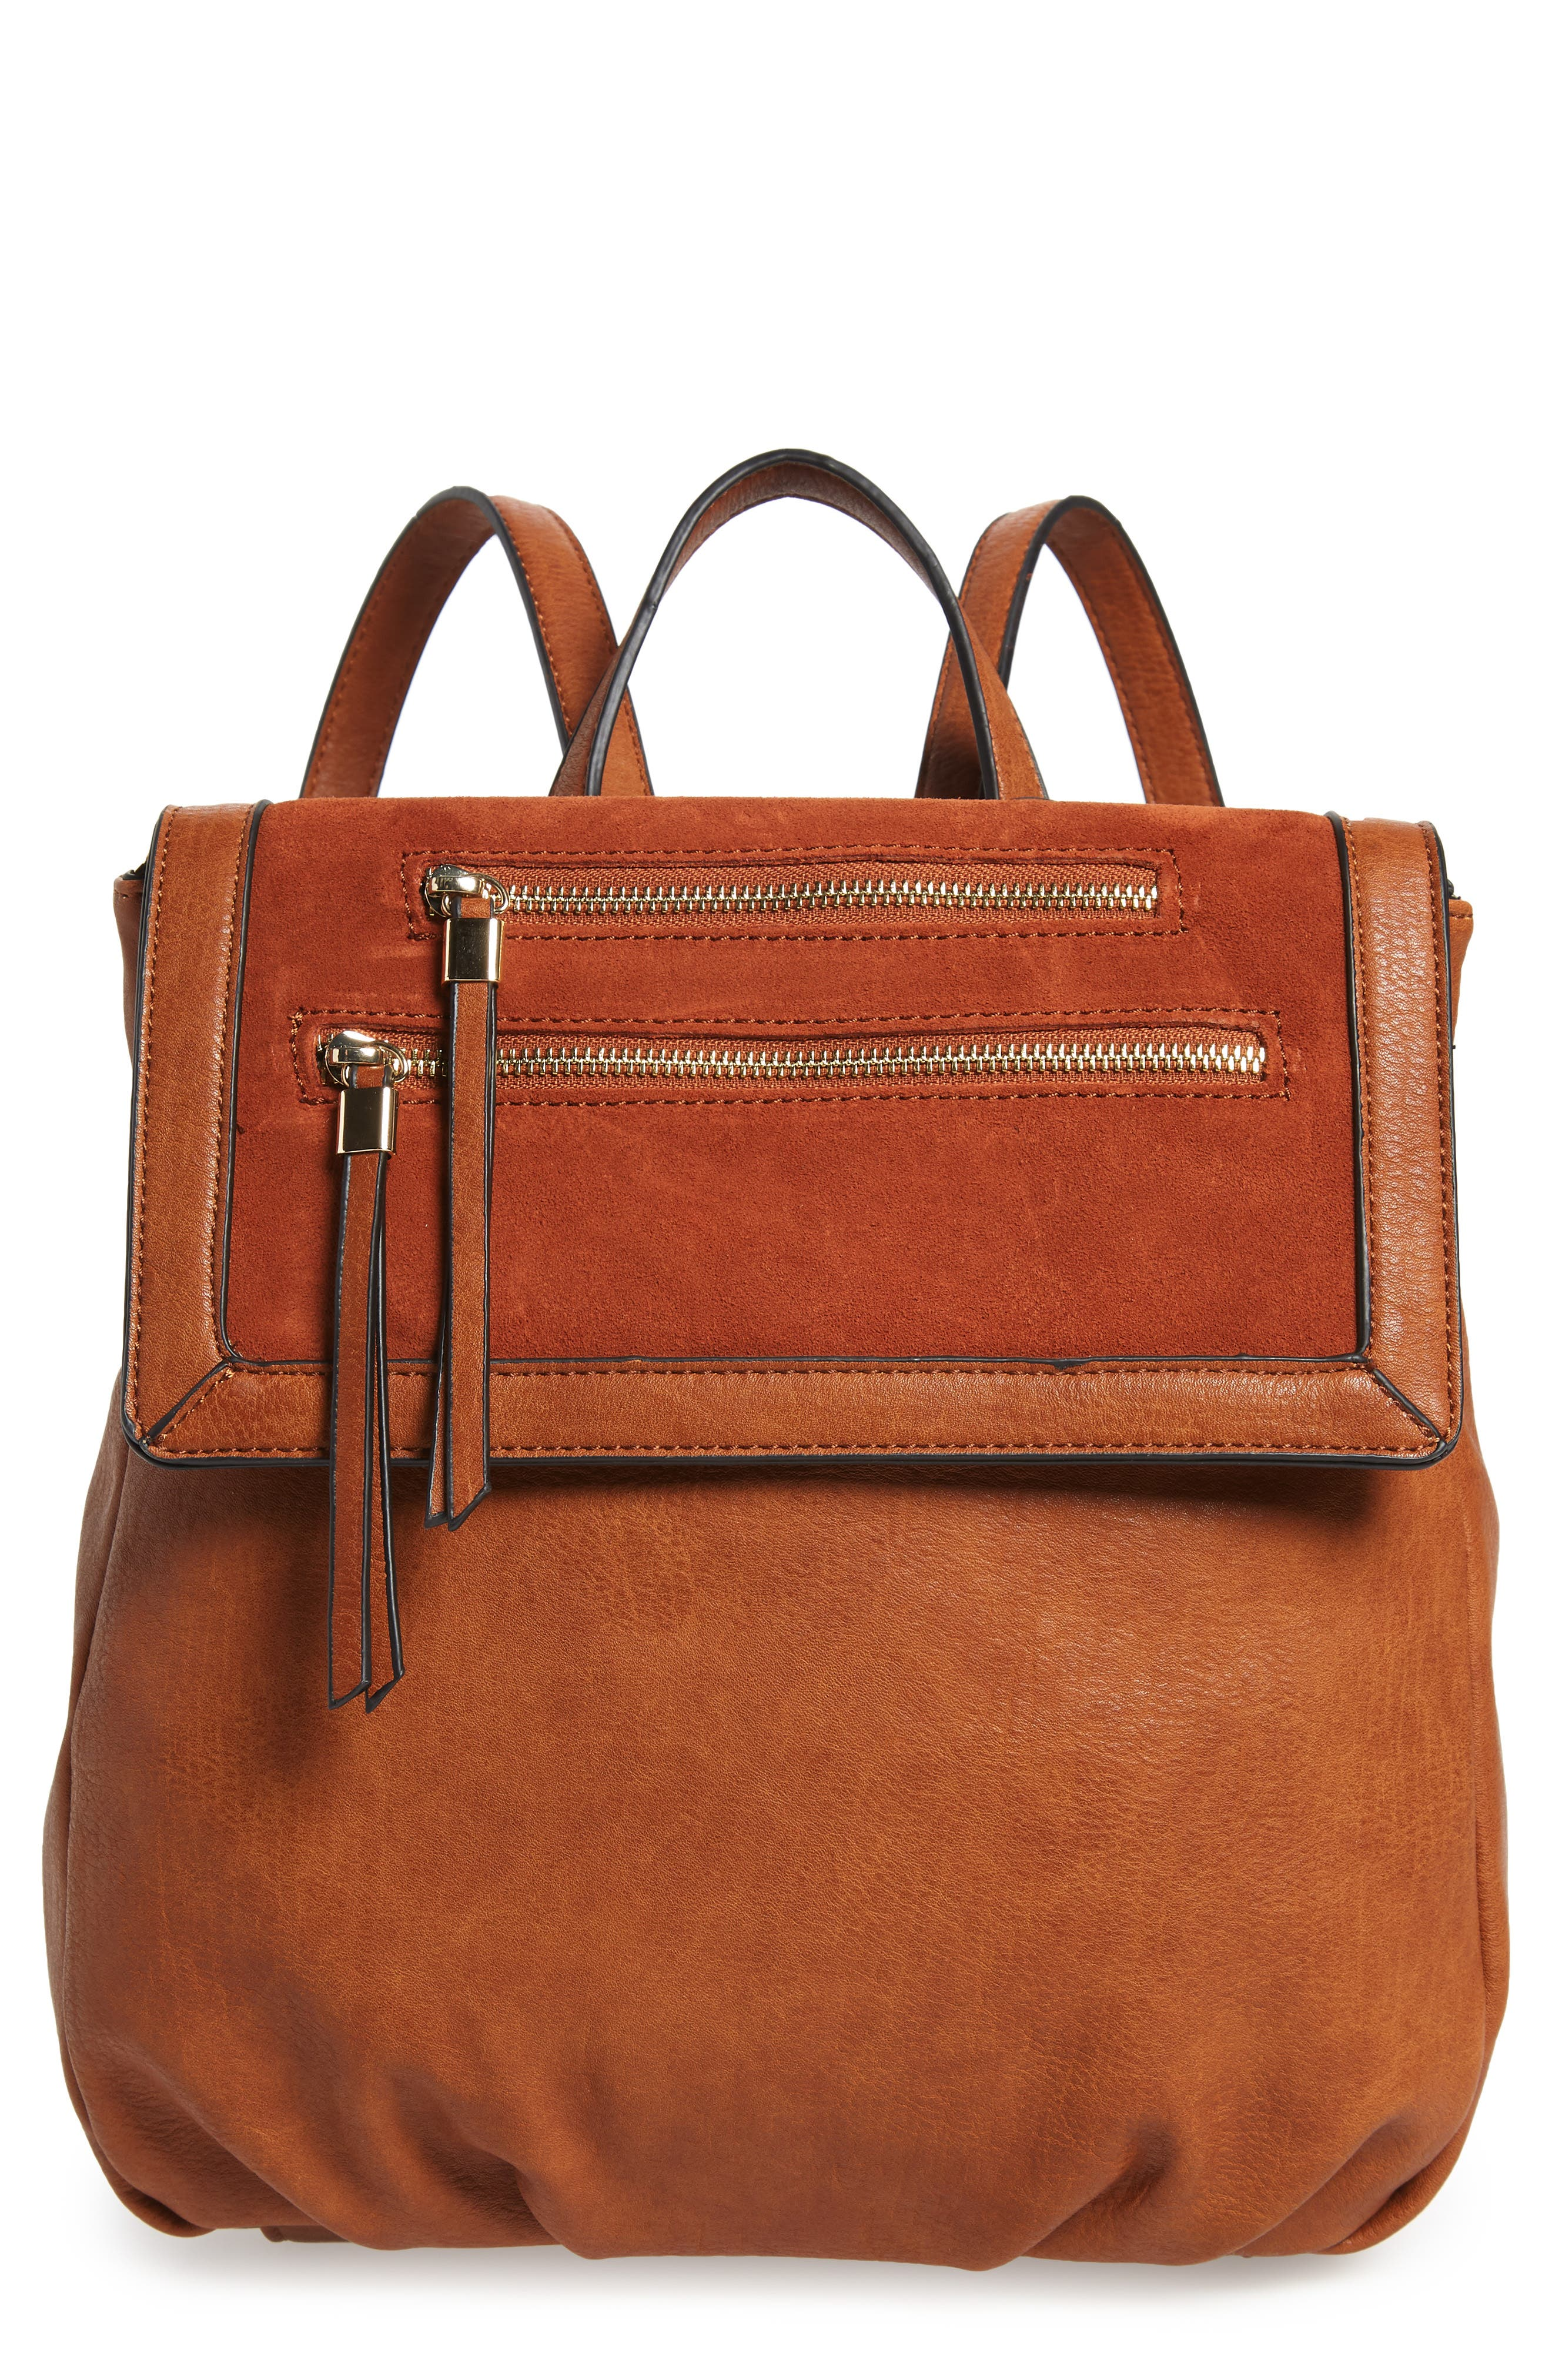 Chele Backpack,                         Main,                         color, COGNAC